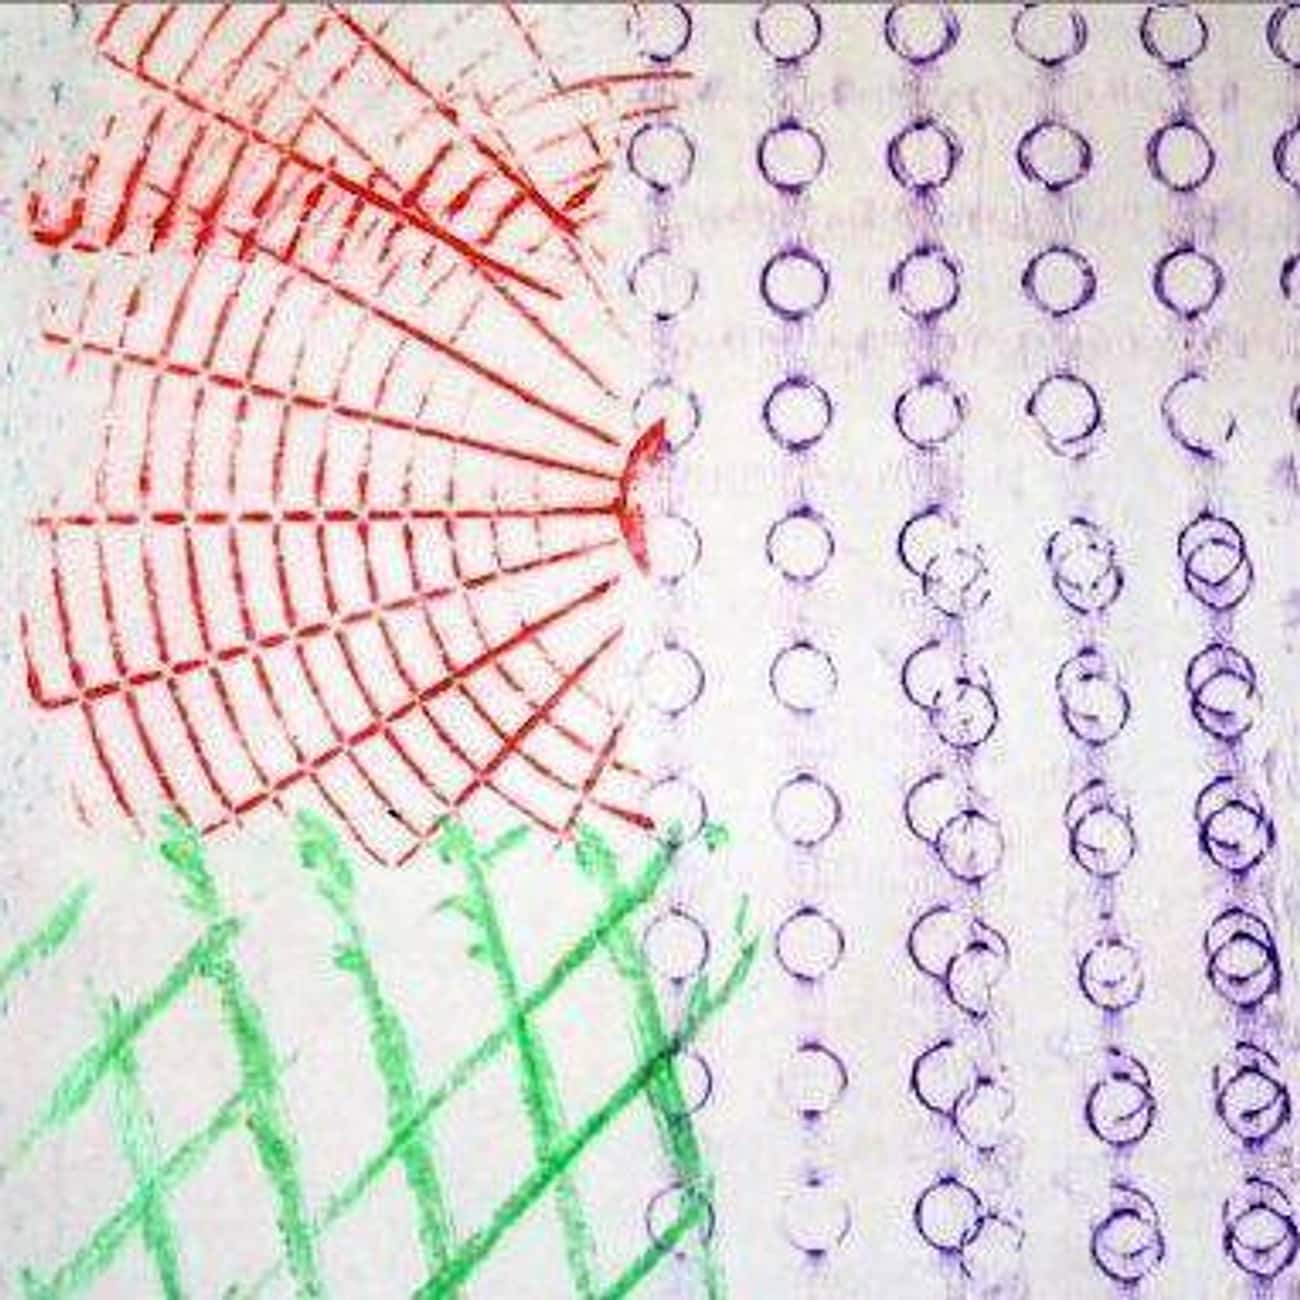 Make a Crayon Rubbing is listed (or ranked) 2 on the list Good Activities for 4 Year Olds